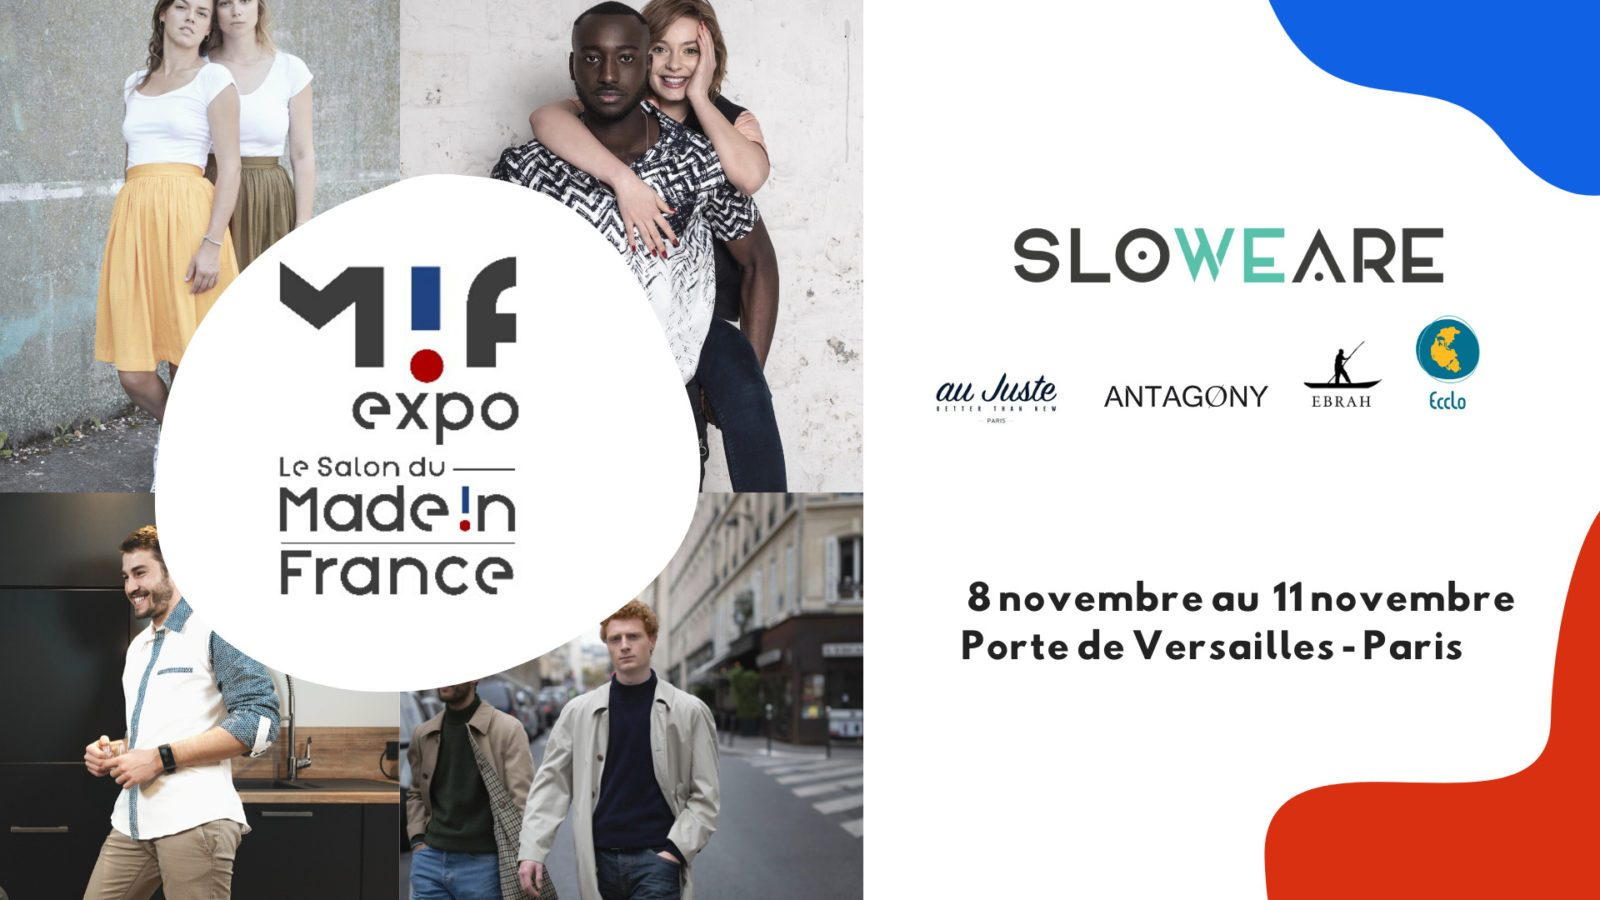 2019-11-01 Salon du made in France — MIF EXPO X SloWeAre 2